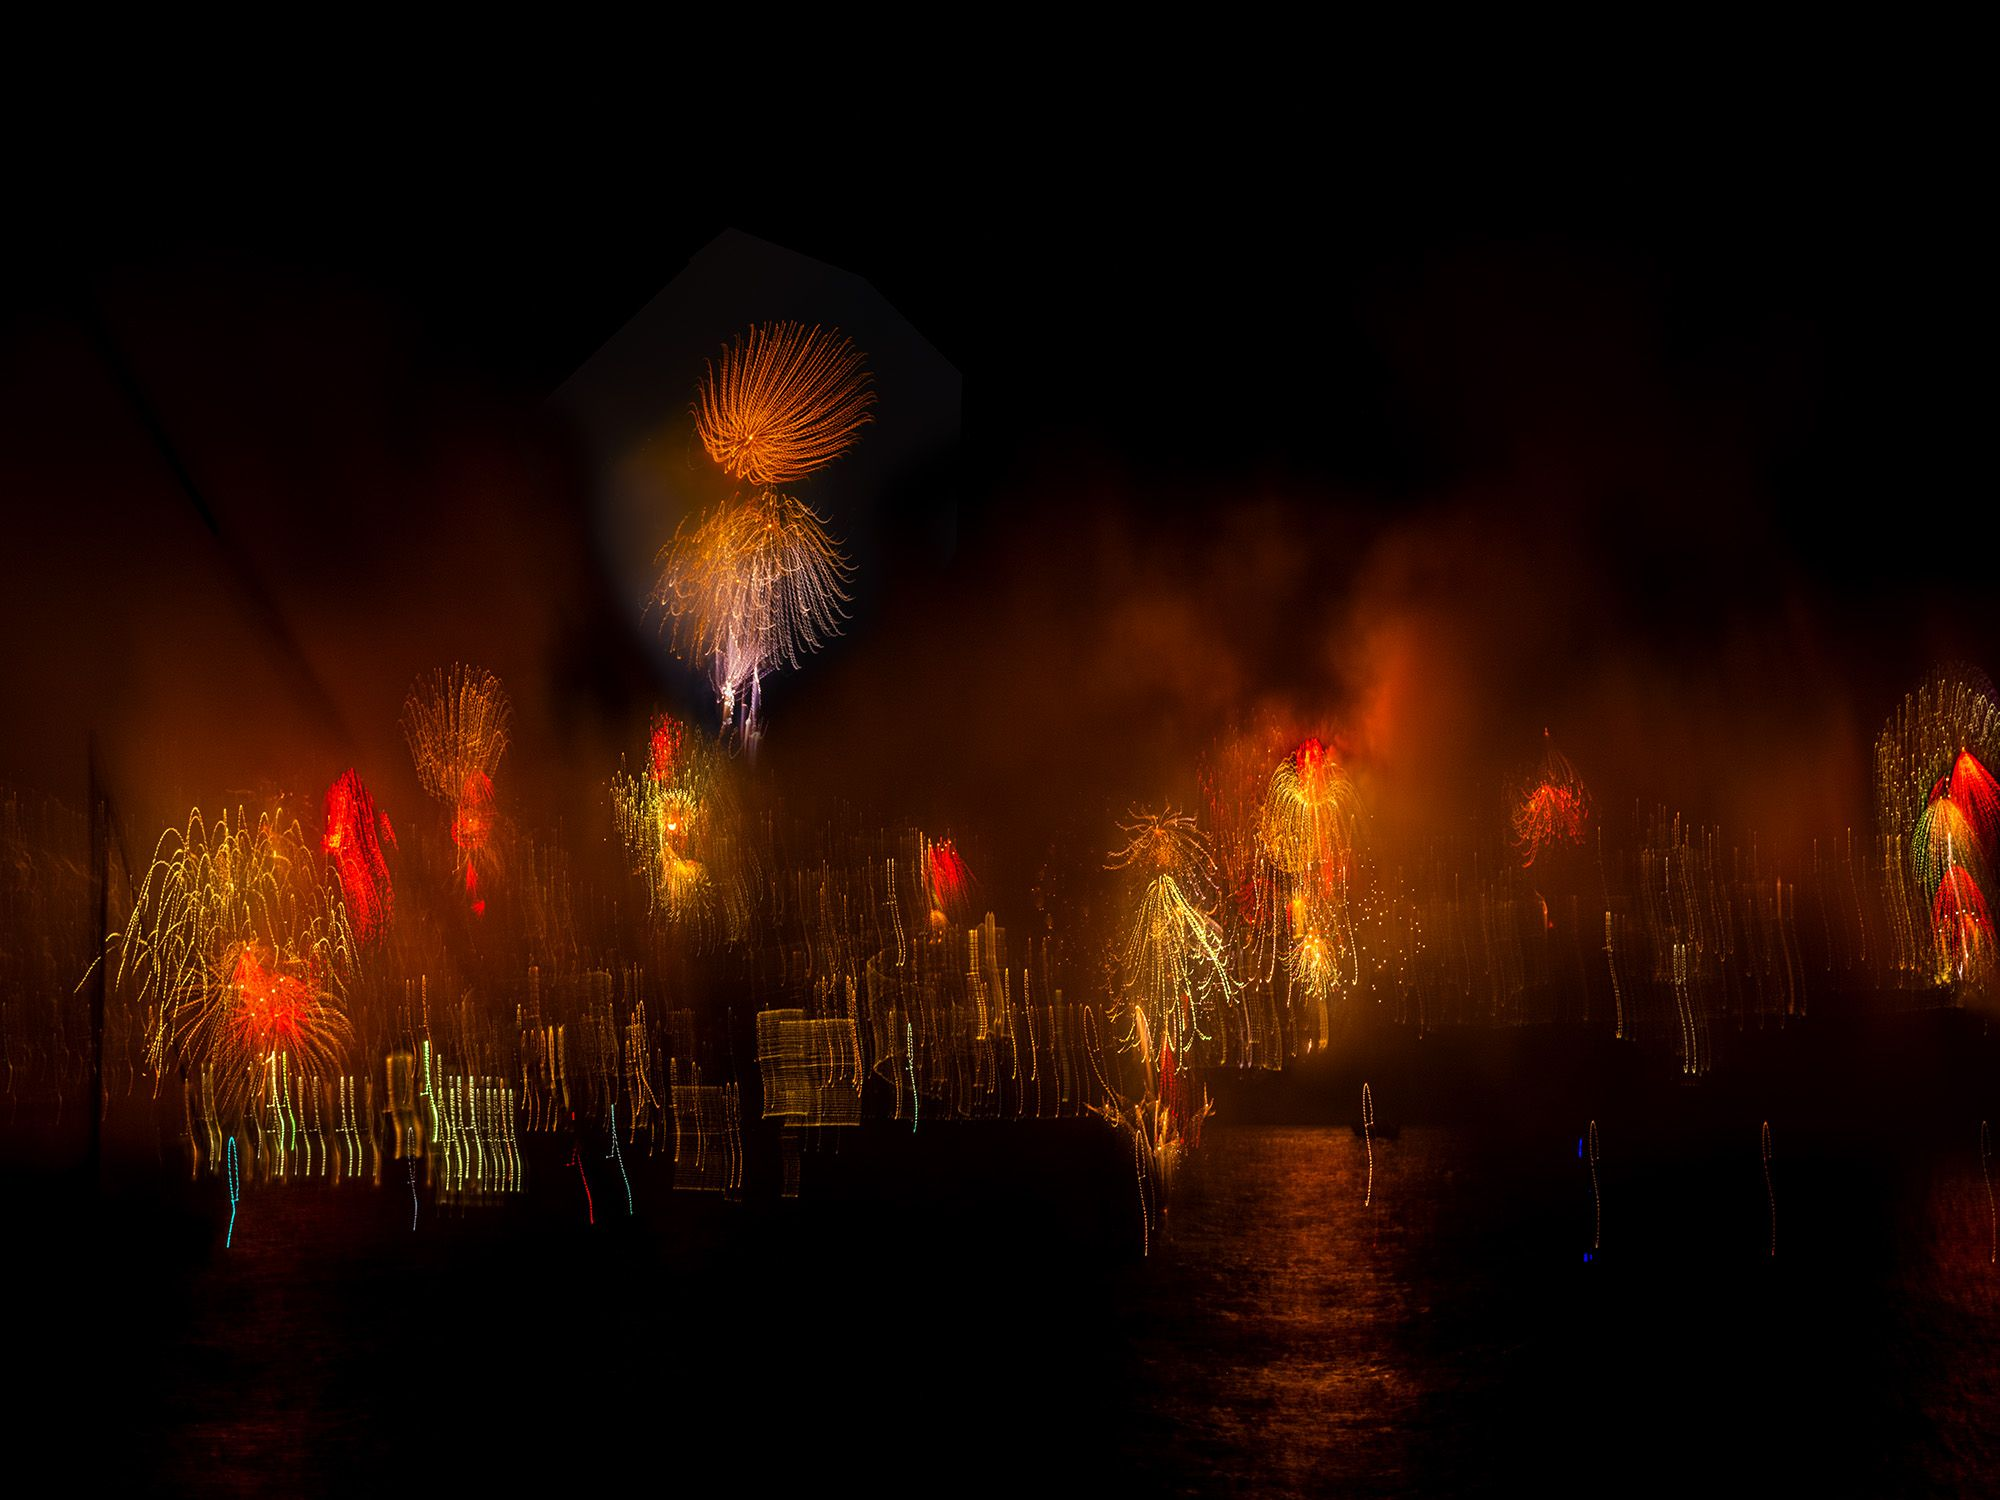 Fireworks of Funchal |2020/21